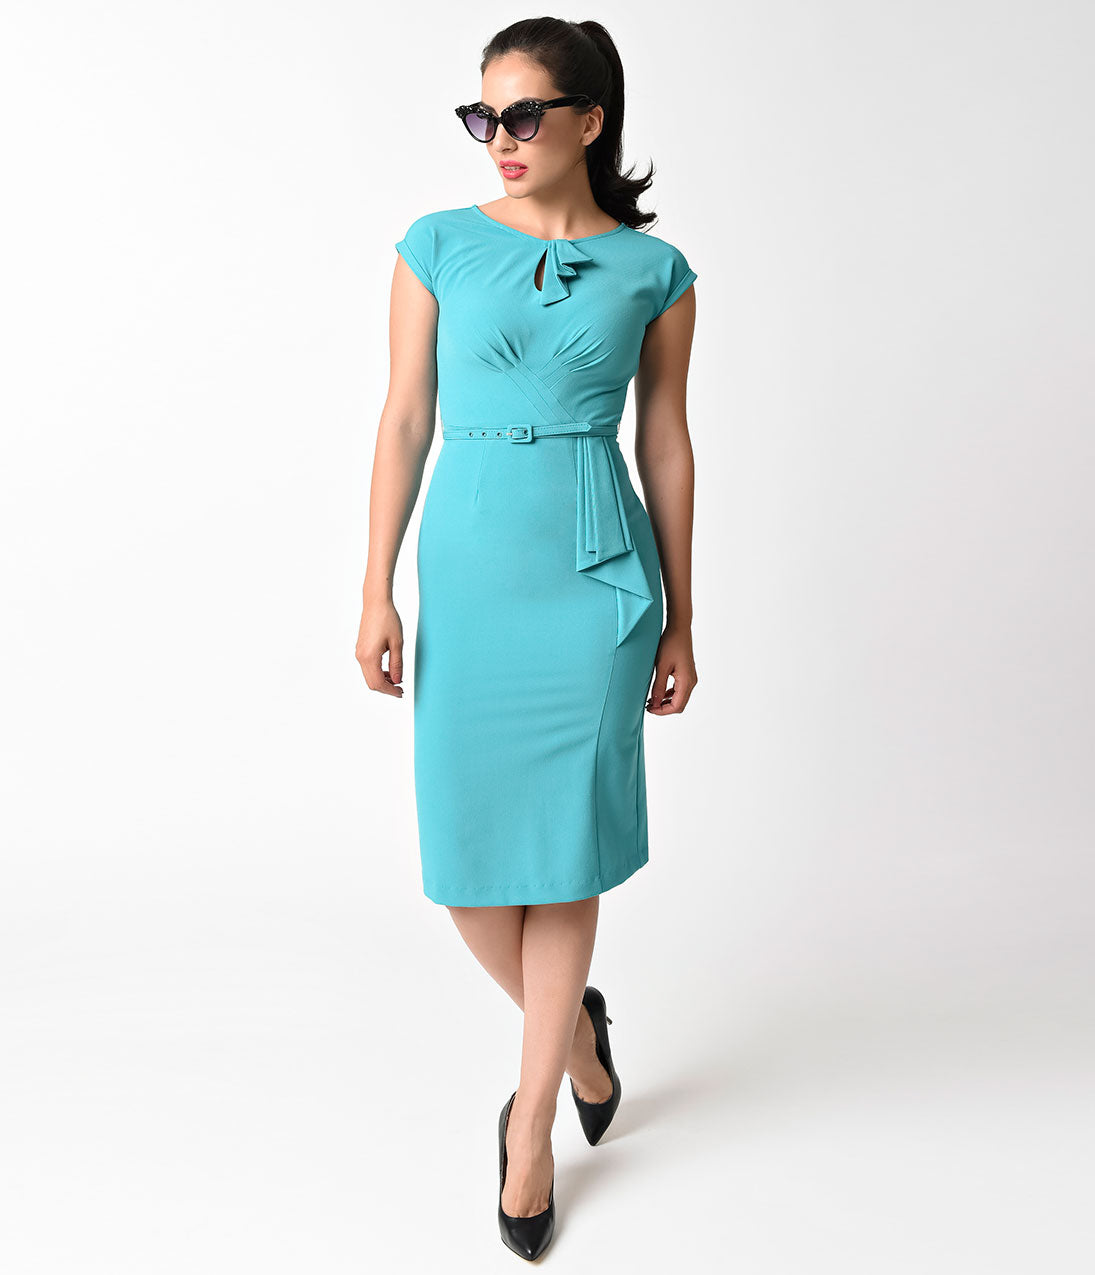 500 Vintage Style Dresses for Sale Stop Staring 1940s Style Aqua Fitted Timeless Wiggle Dress $80.00 AT vintagedancer.com